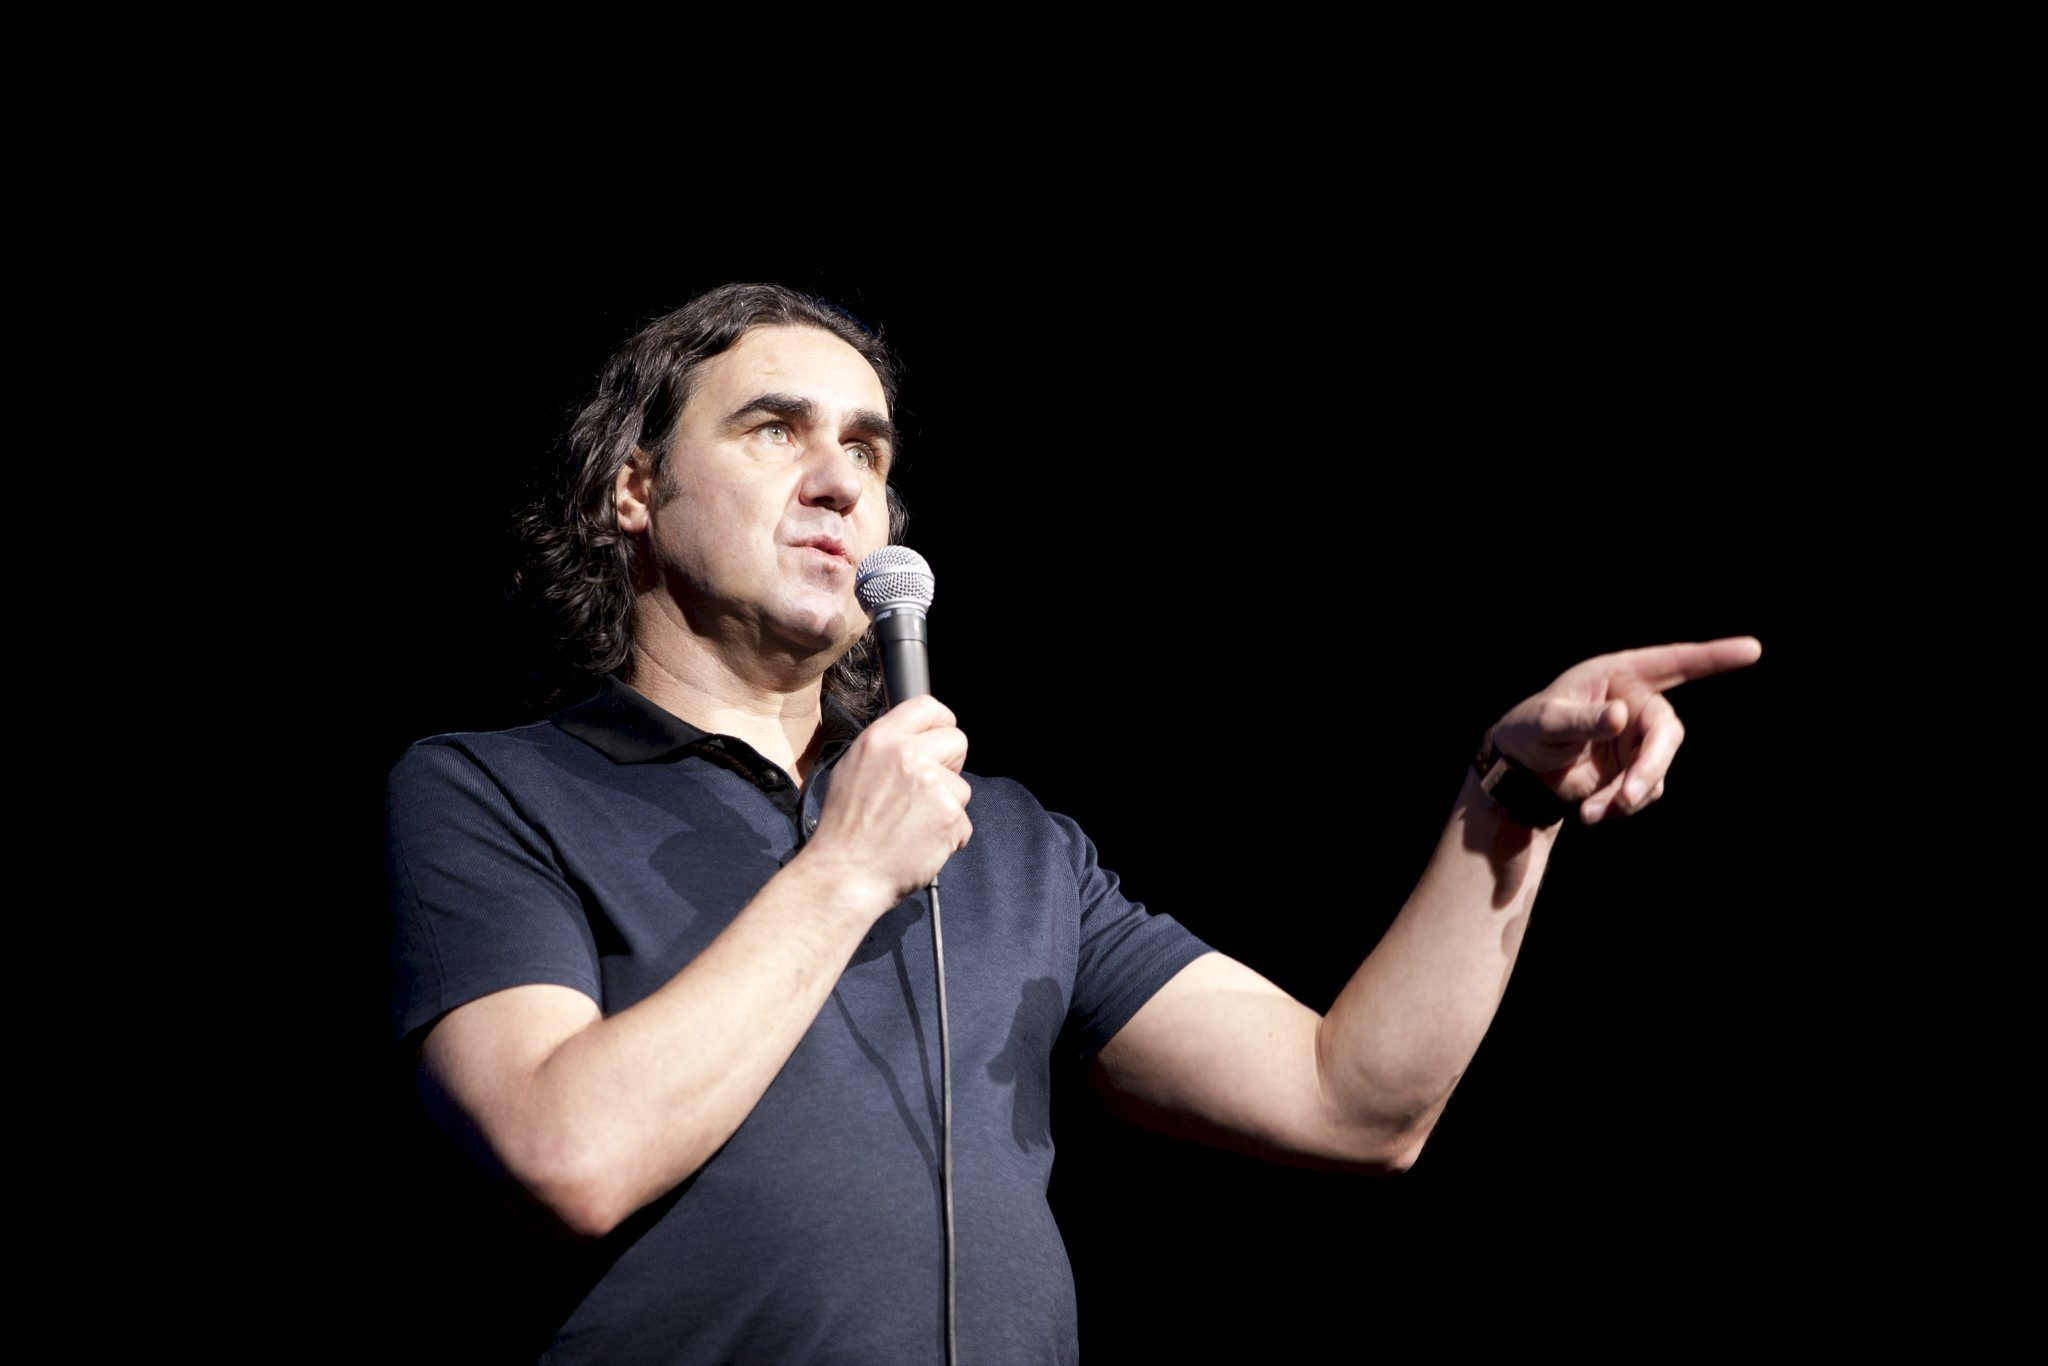 Micky Flanagan – Back in the Game